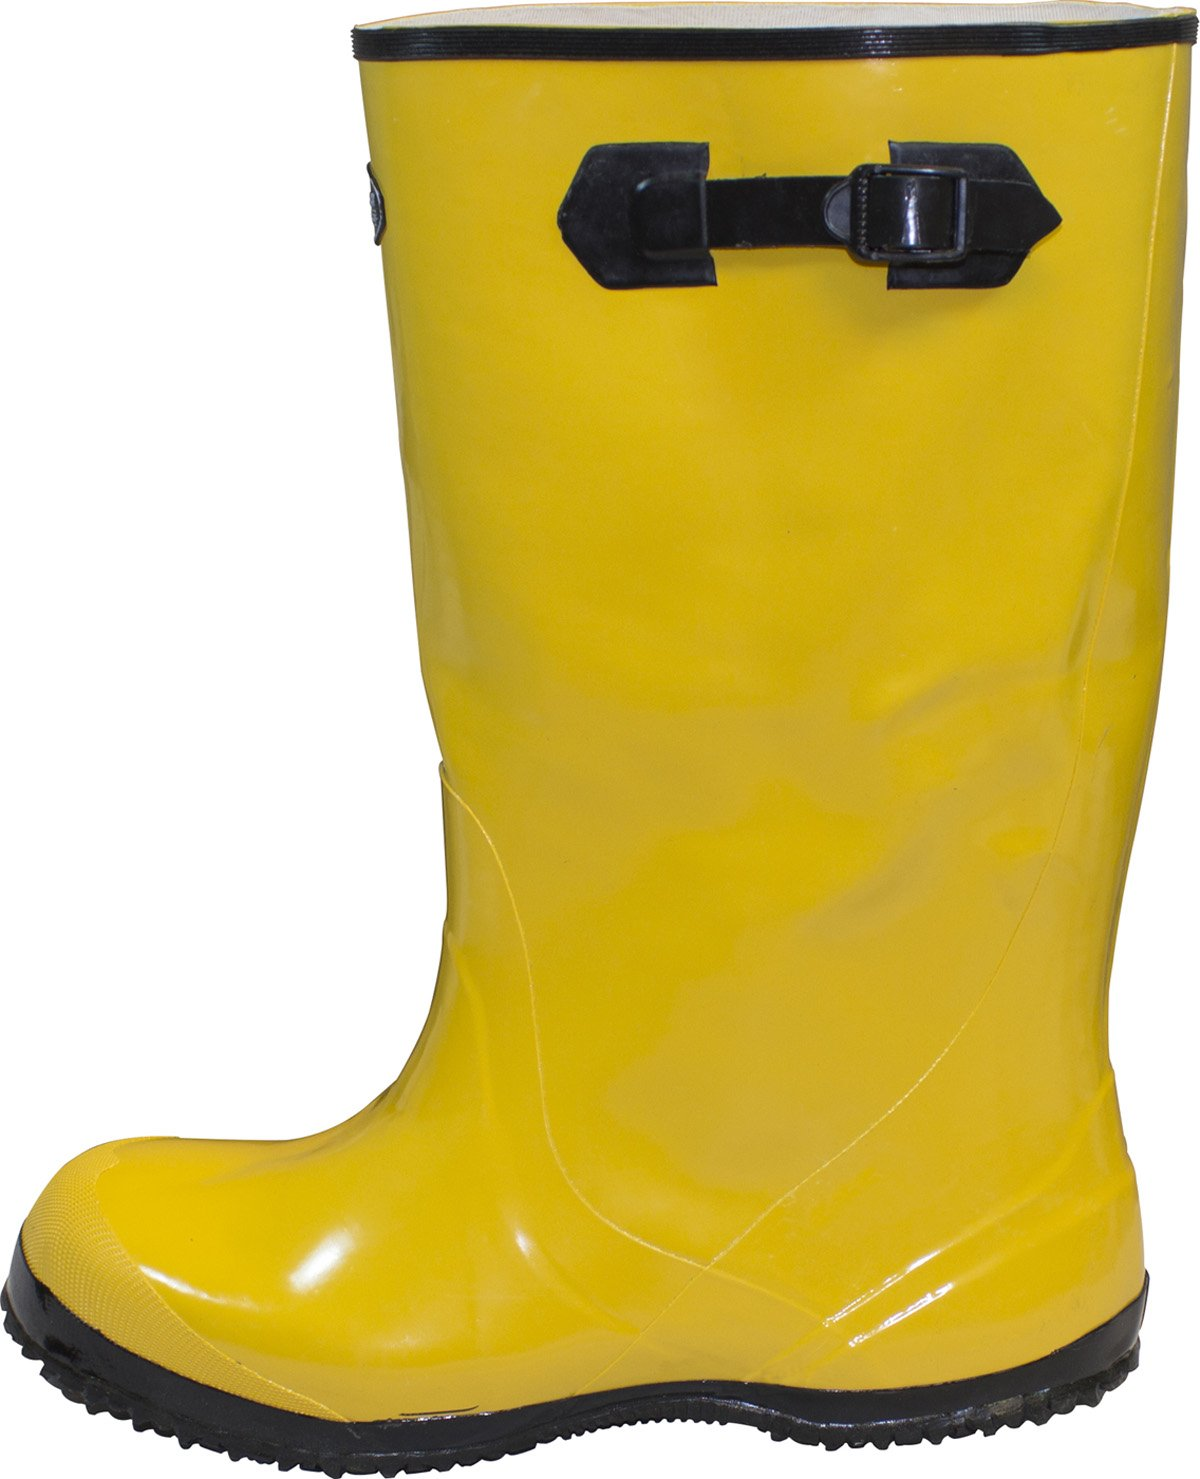 The Safety Zone BSYE-11-6 Heavy Duty Rubber Shoe Slush Boots, 17'' Height, Size 11 (Pair), Yellow by The Safety Zone